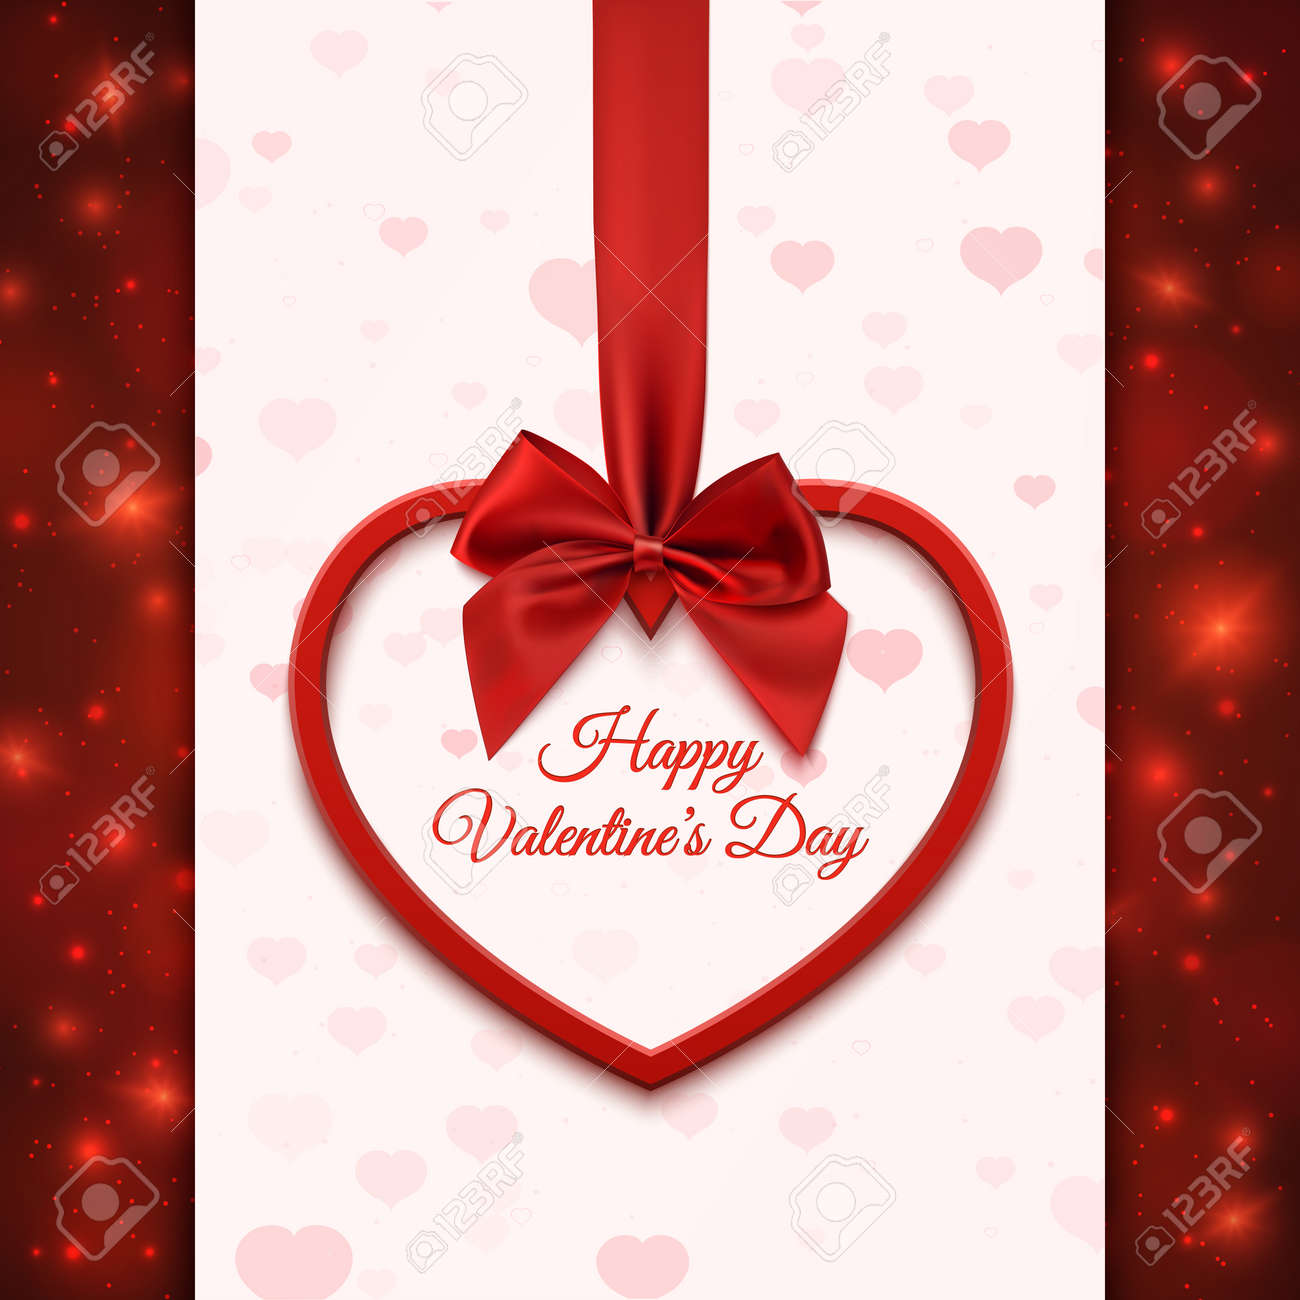 Happy Valentines Day Greeting Card Template Red Heart With Red – Valentine Day Greetings Card